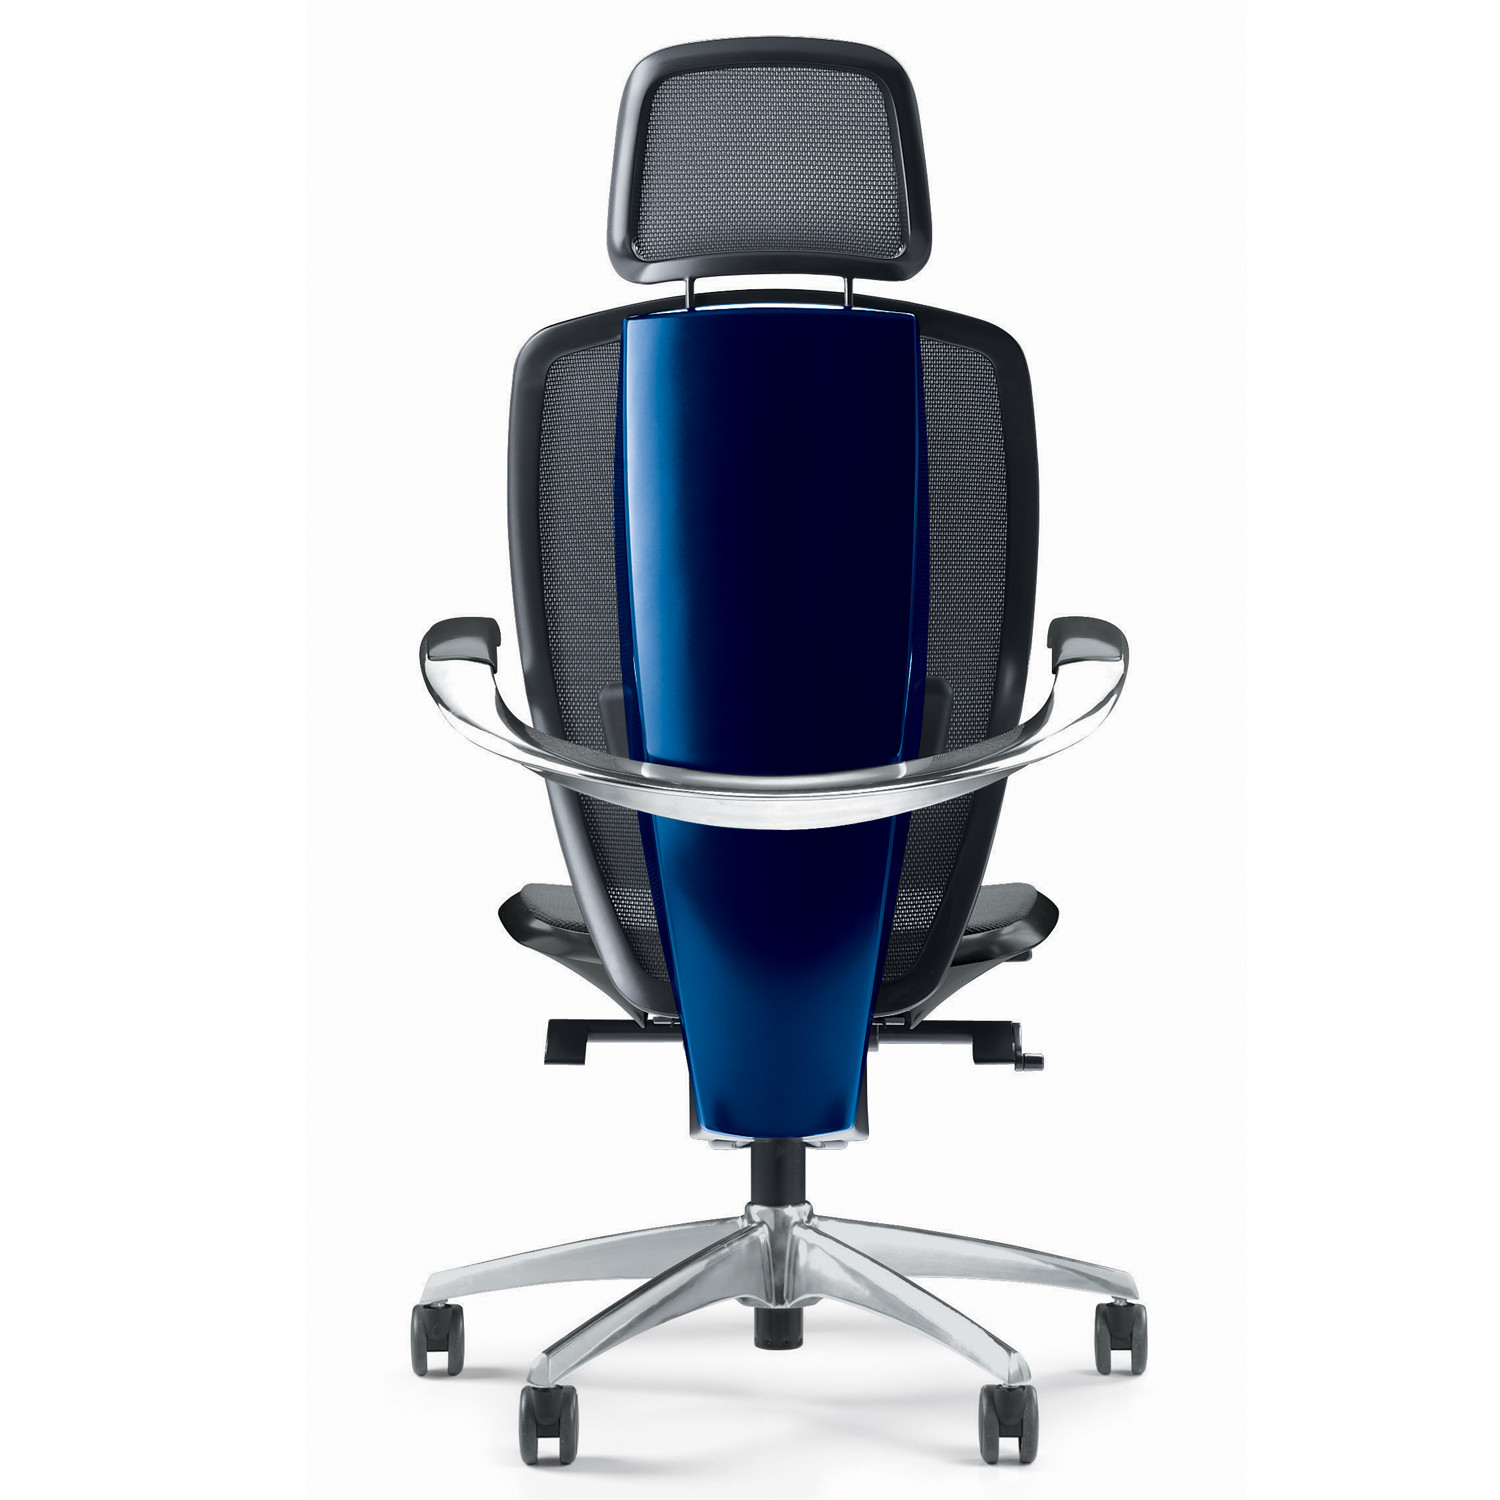 Xten Fully Adjustable Executive Office Chair